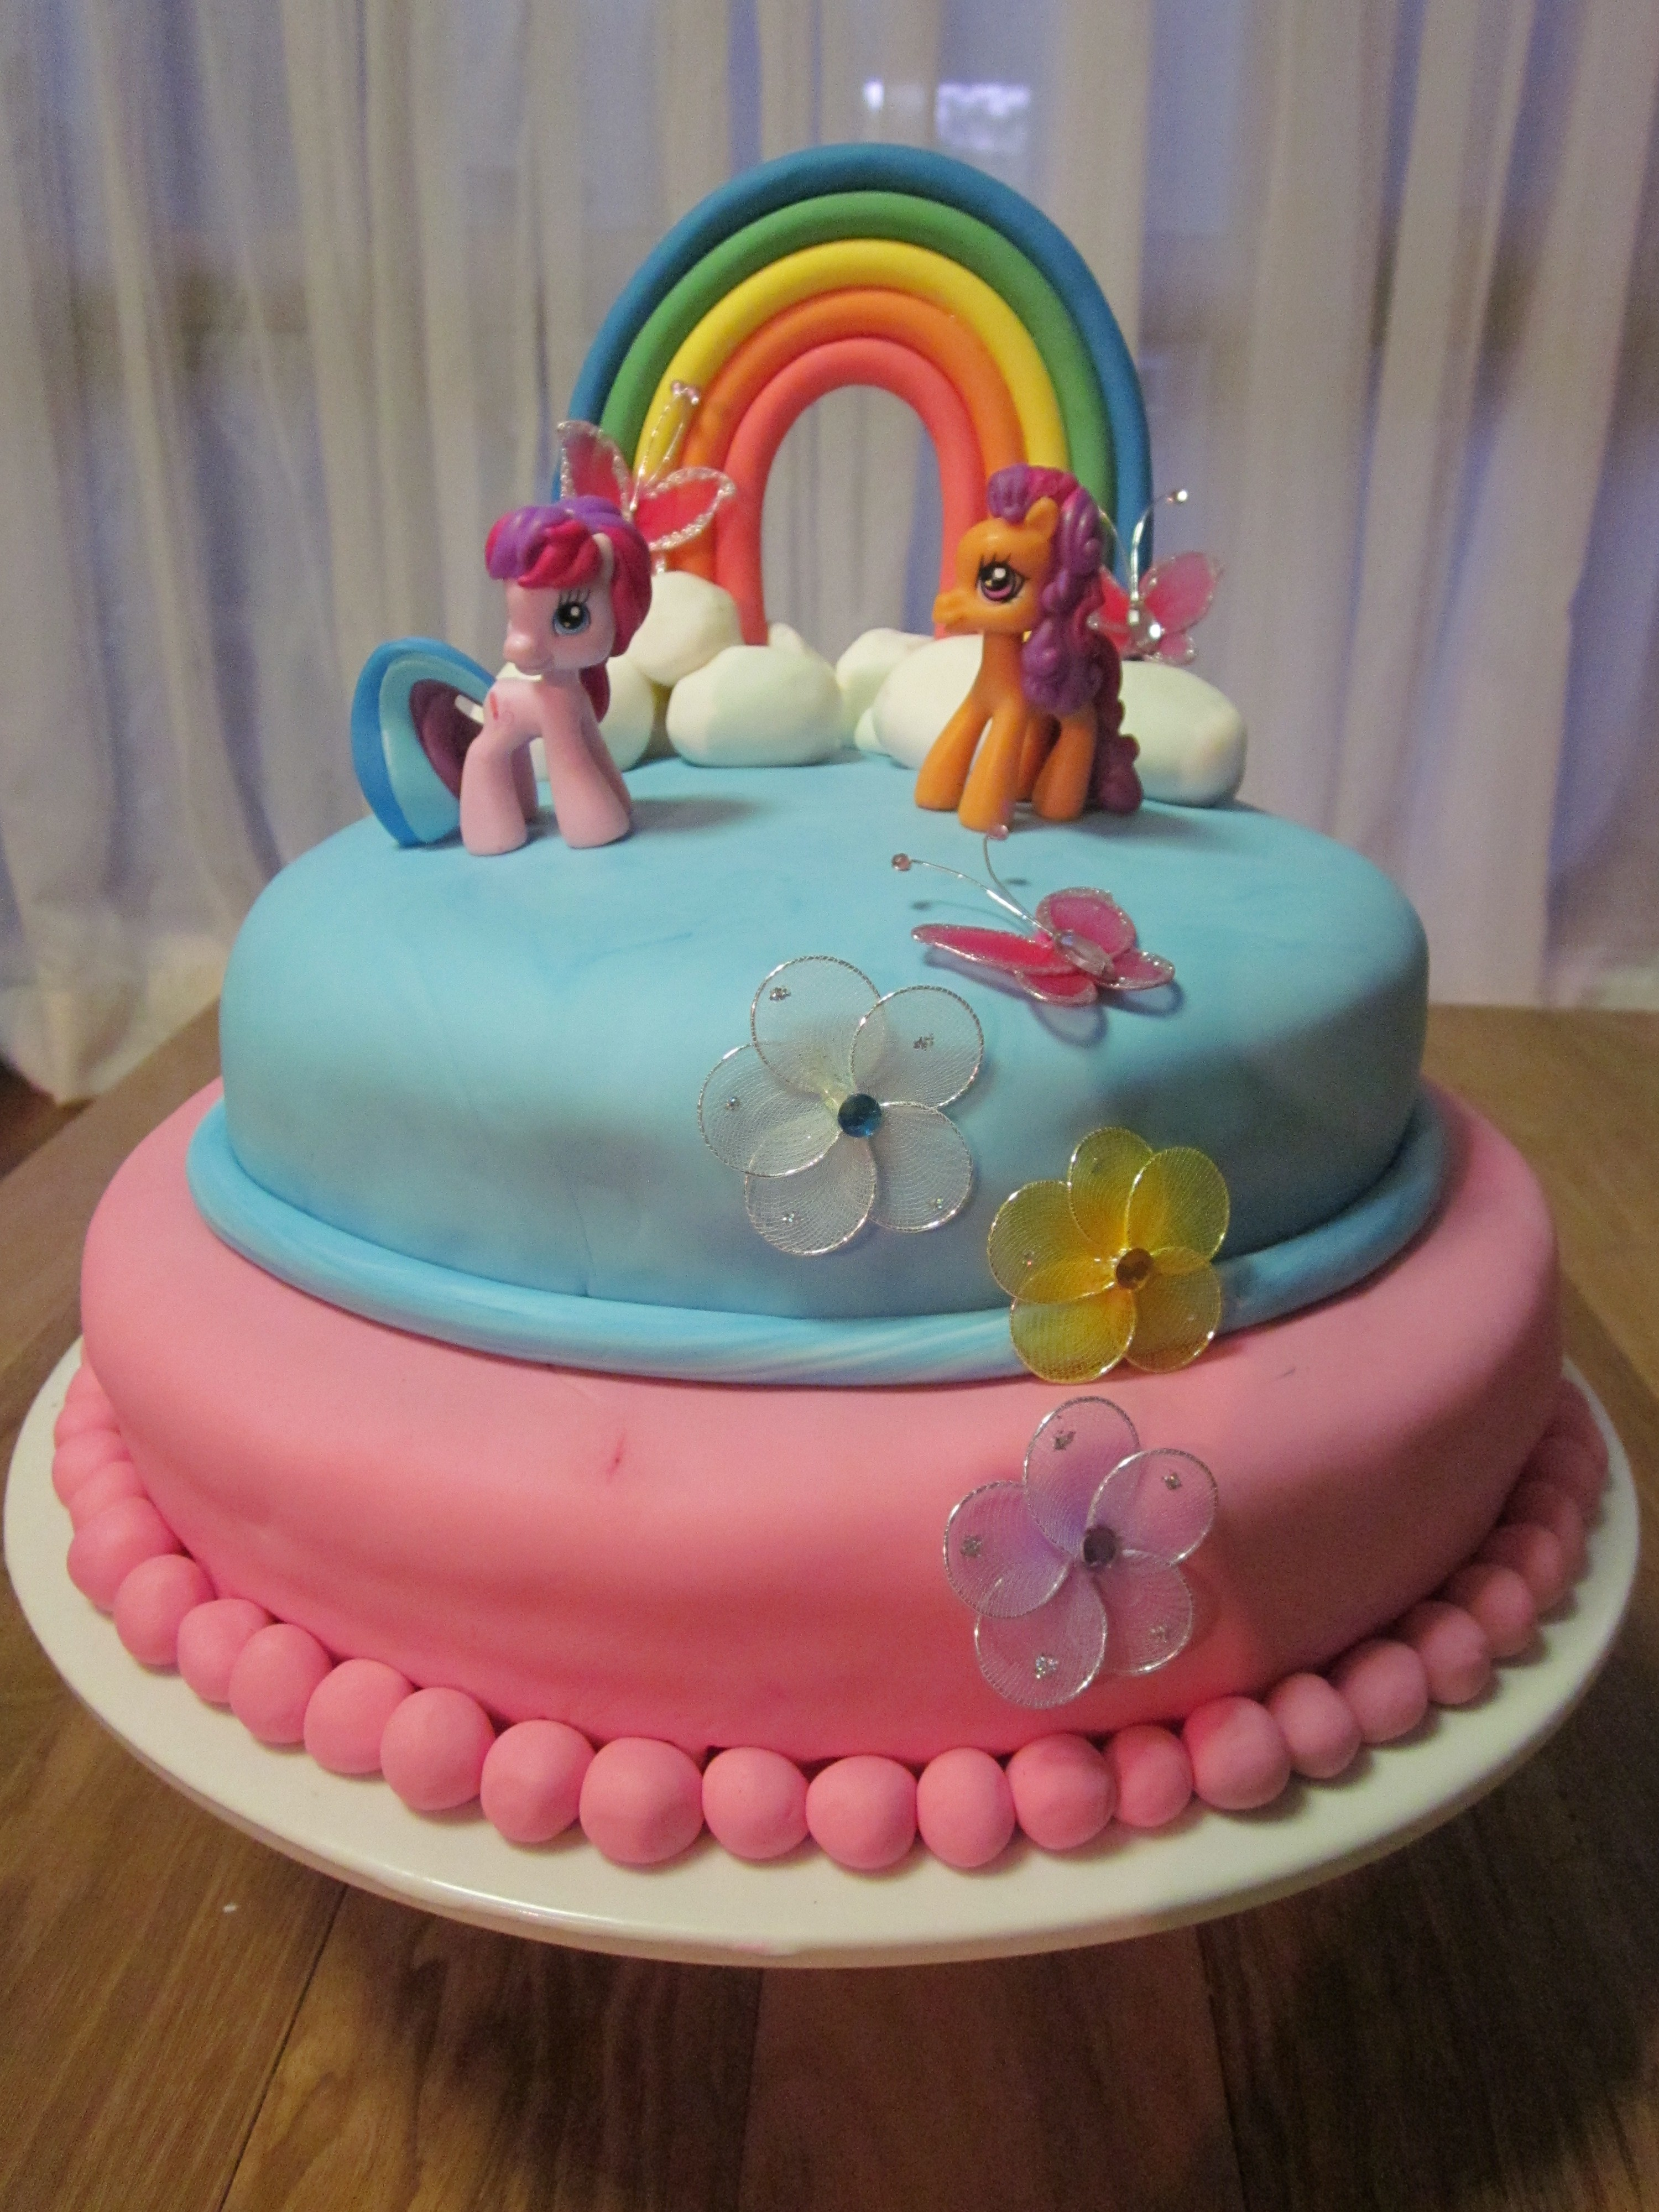 Cake Designs My Little Pony : 301 Moved Permanently